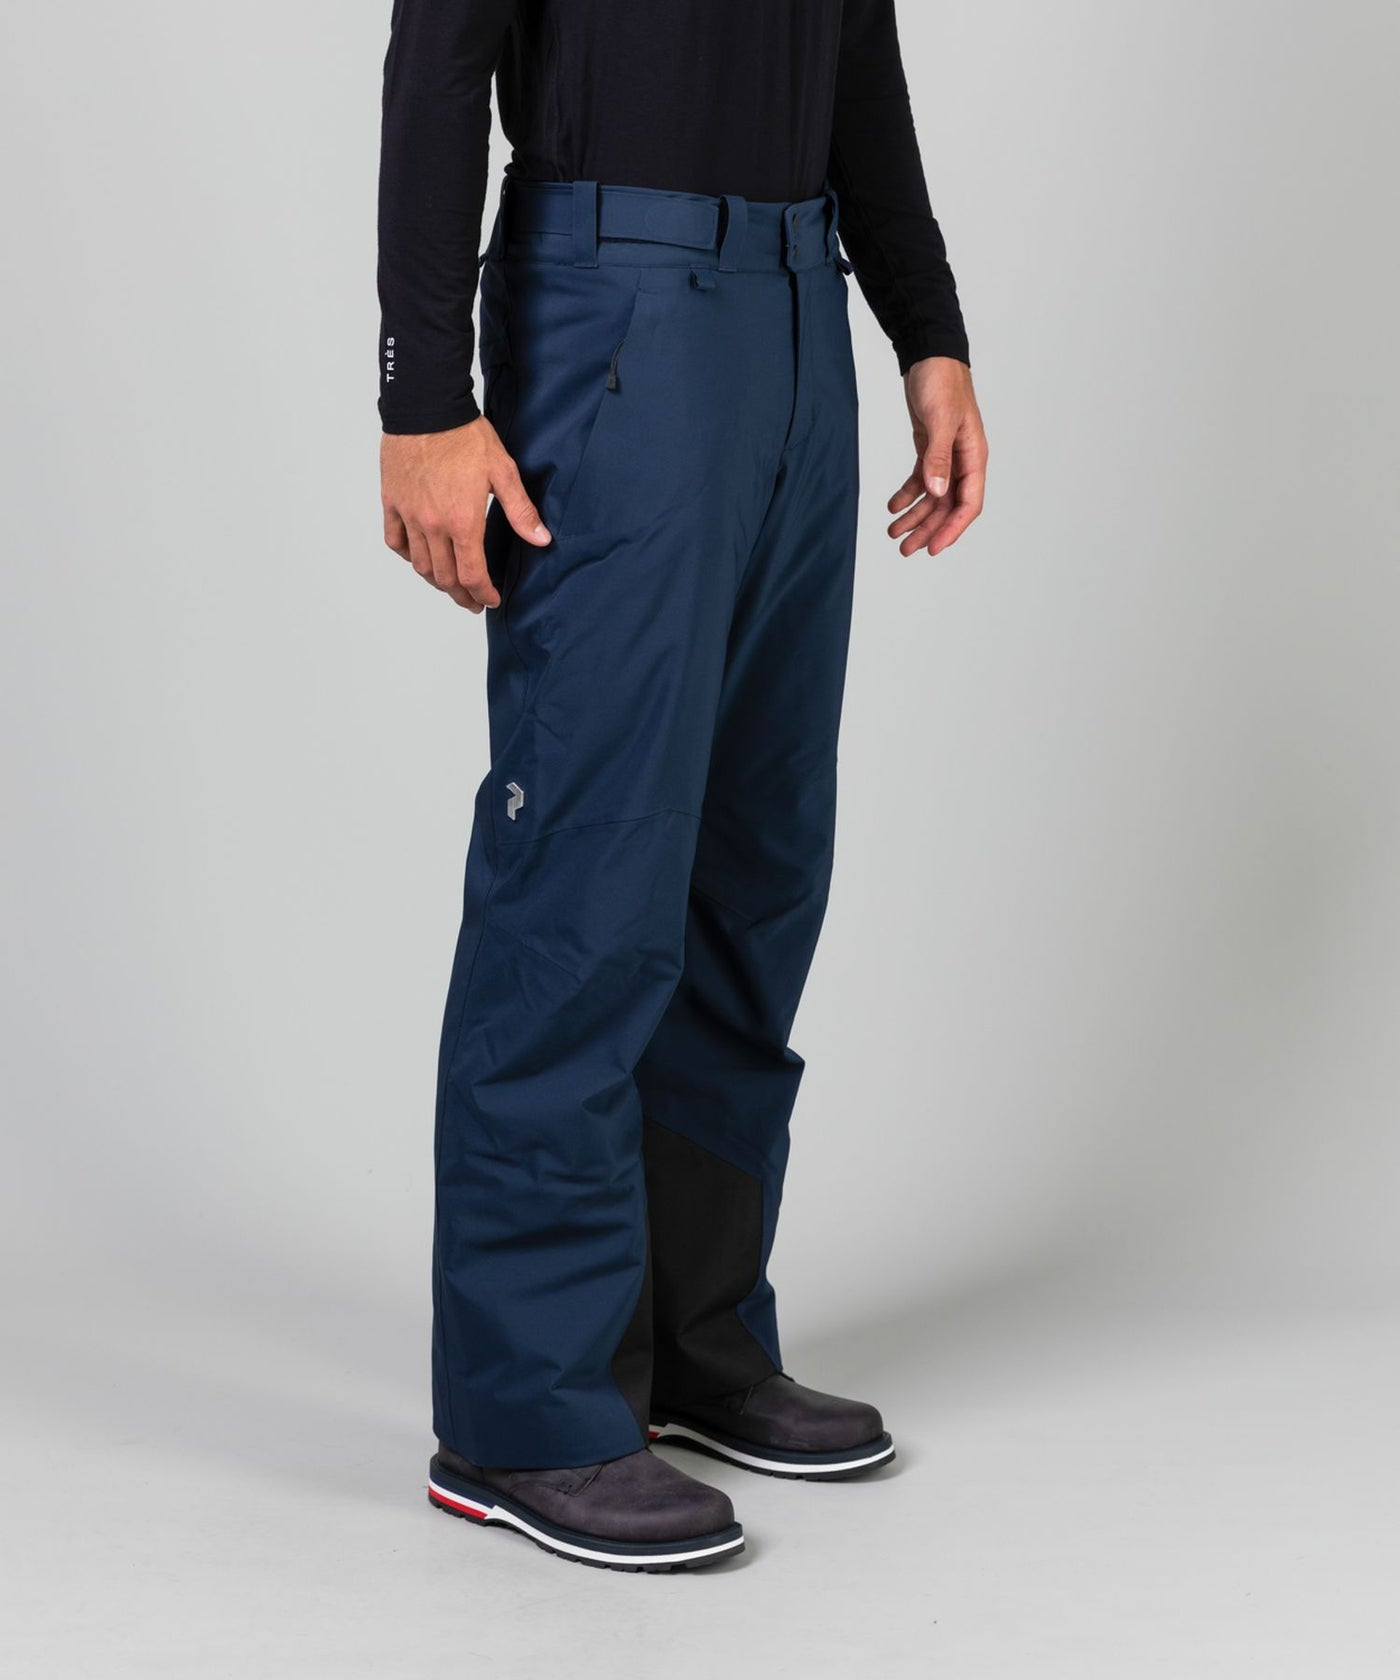 Men's Maroon Ski Pants - Snowsport